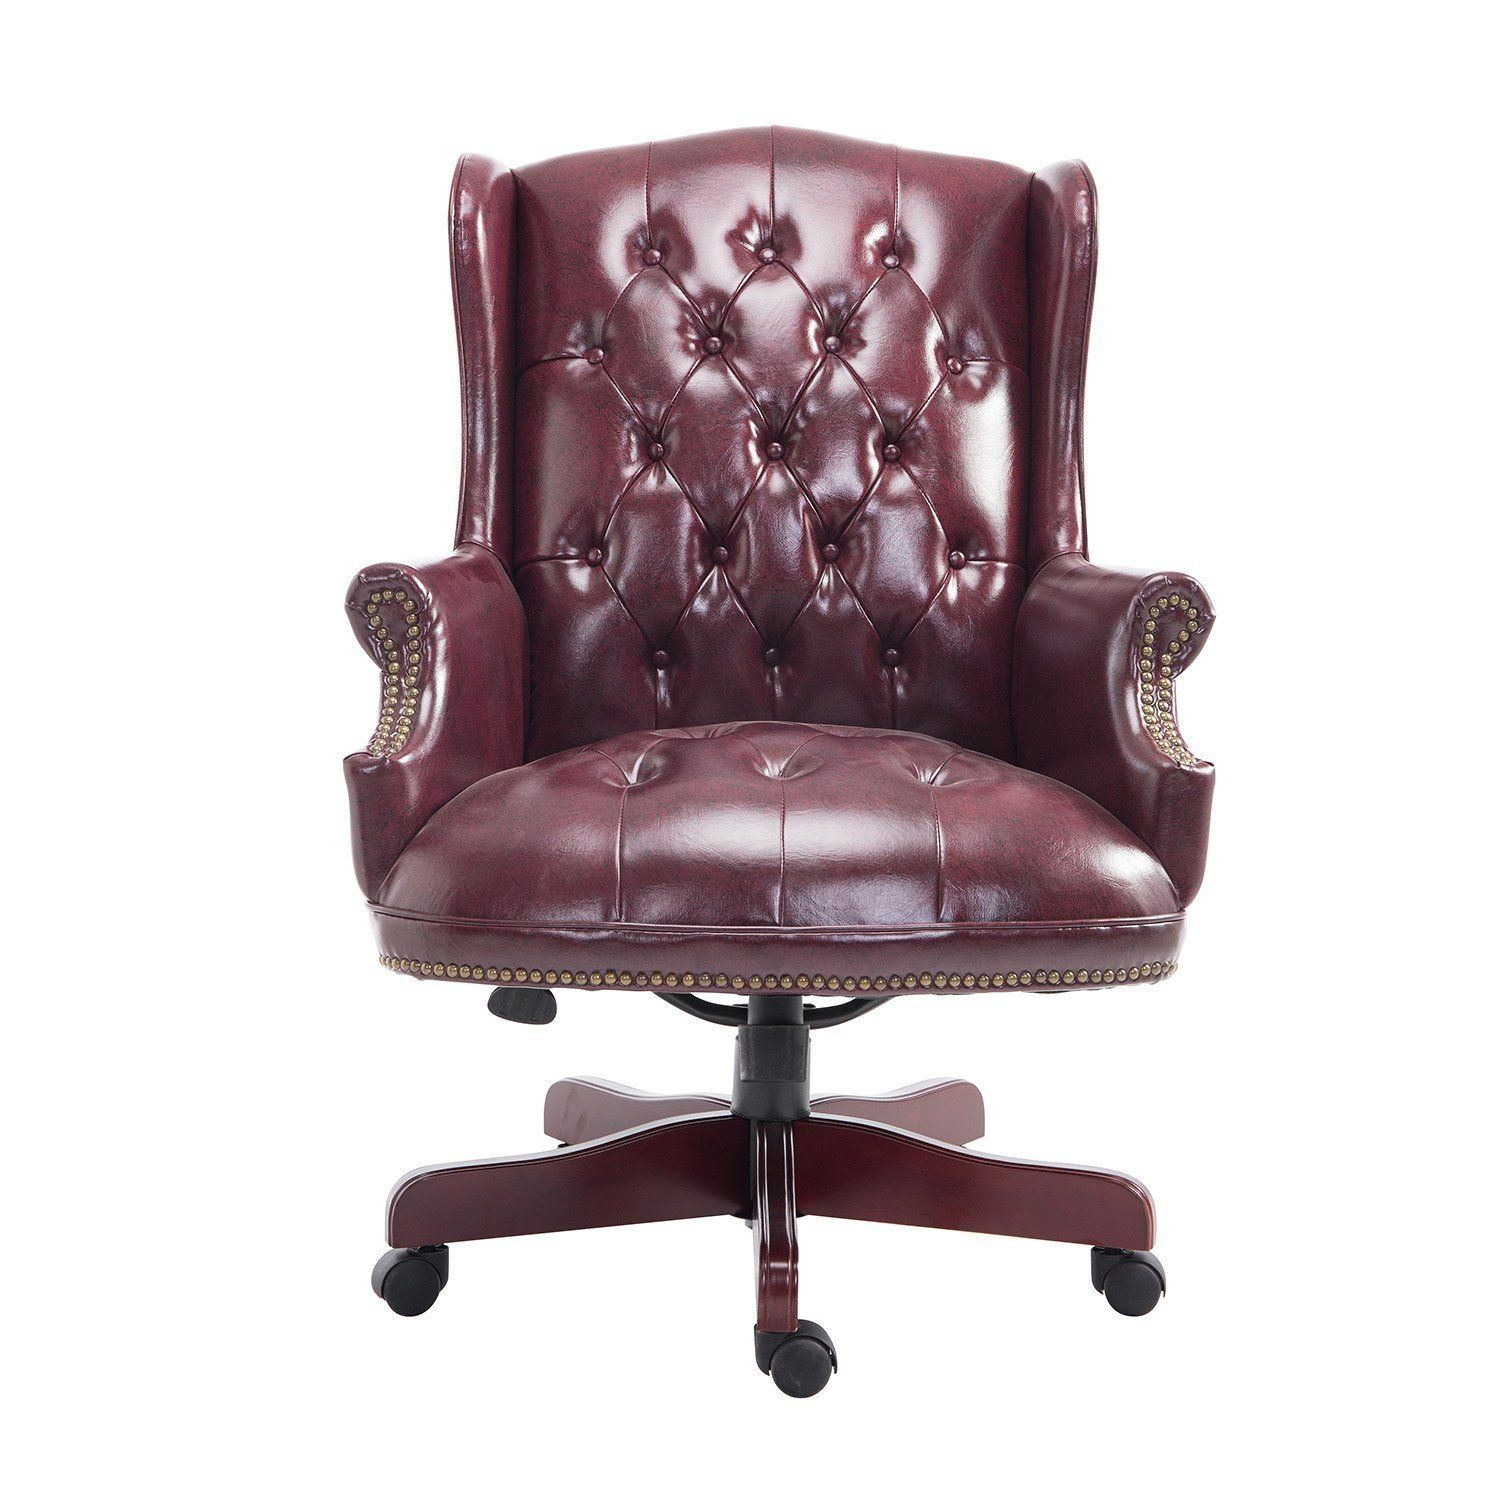 Chesterfield office chair - Homcom Luxury Rolling Executive Managers Directors Chesterfield Antique High Back Office Chair Pu Leather Padded Swivel